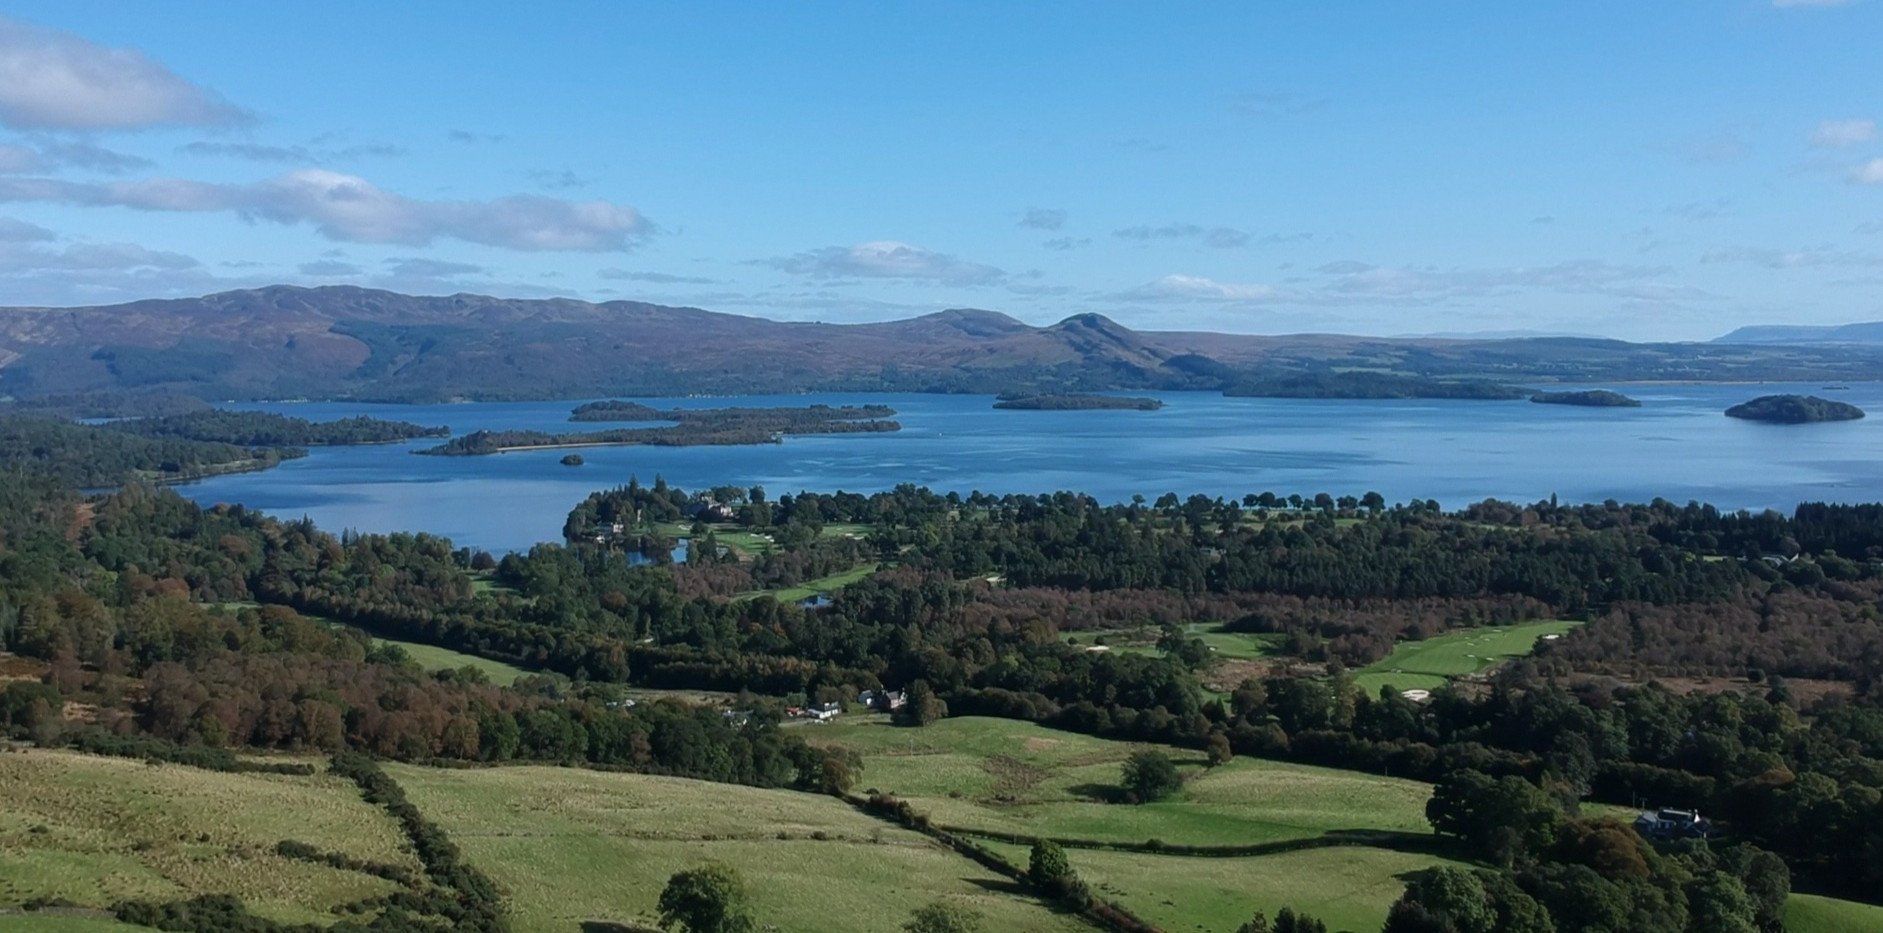 Our fields and Loch Lomond